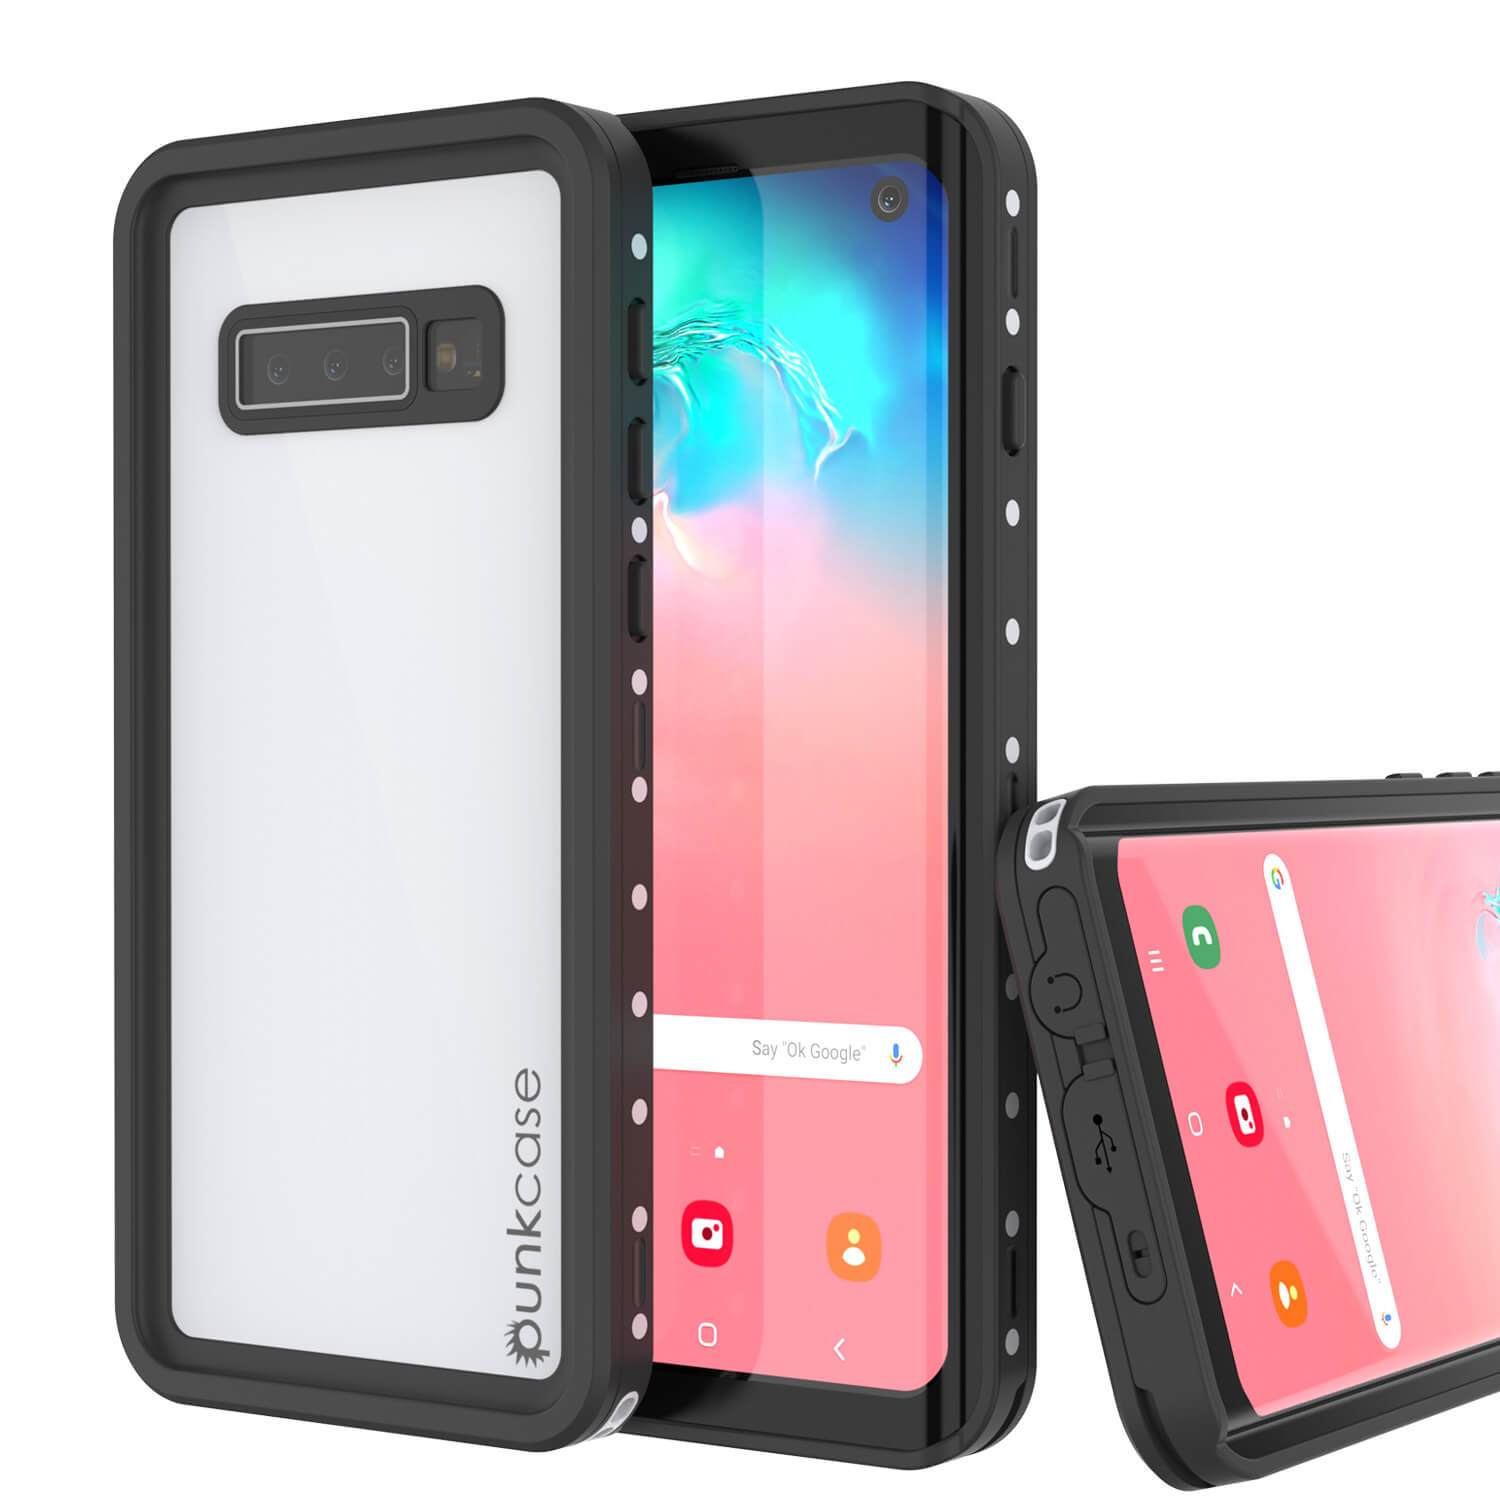 Galaxy S10 Waterproof Case, Punkcase StudStar White Thin 6.6ft Underwater IP68 Shock/Snow Proof